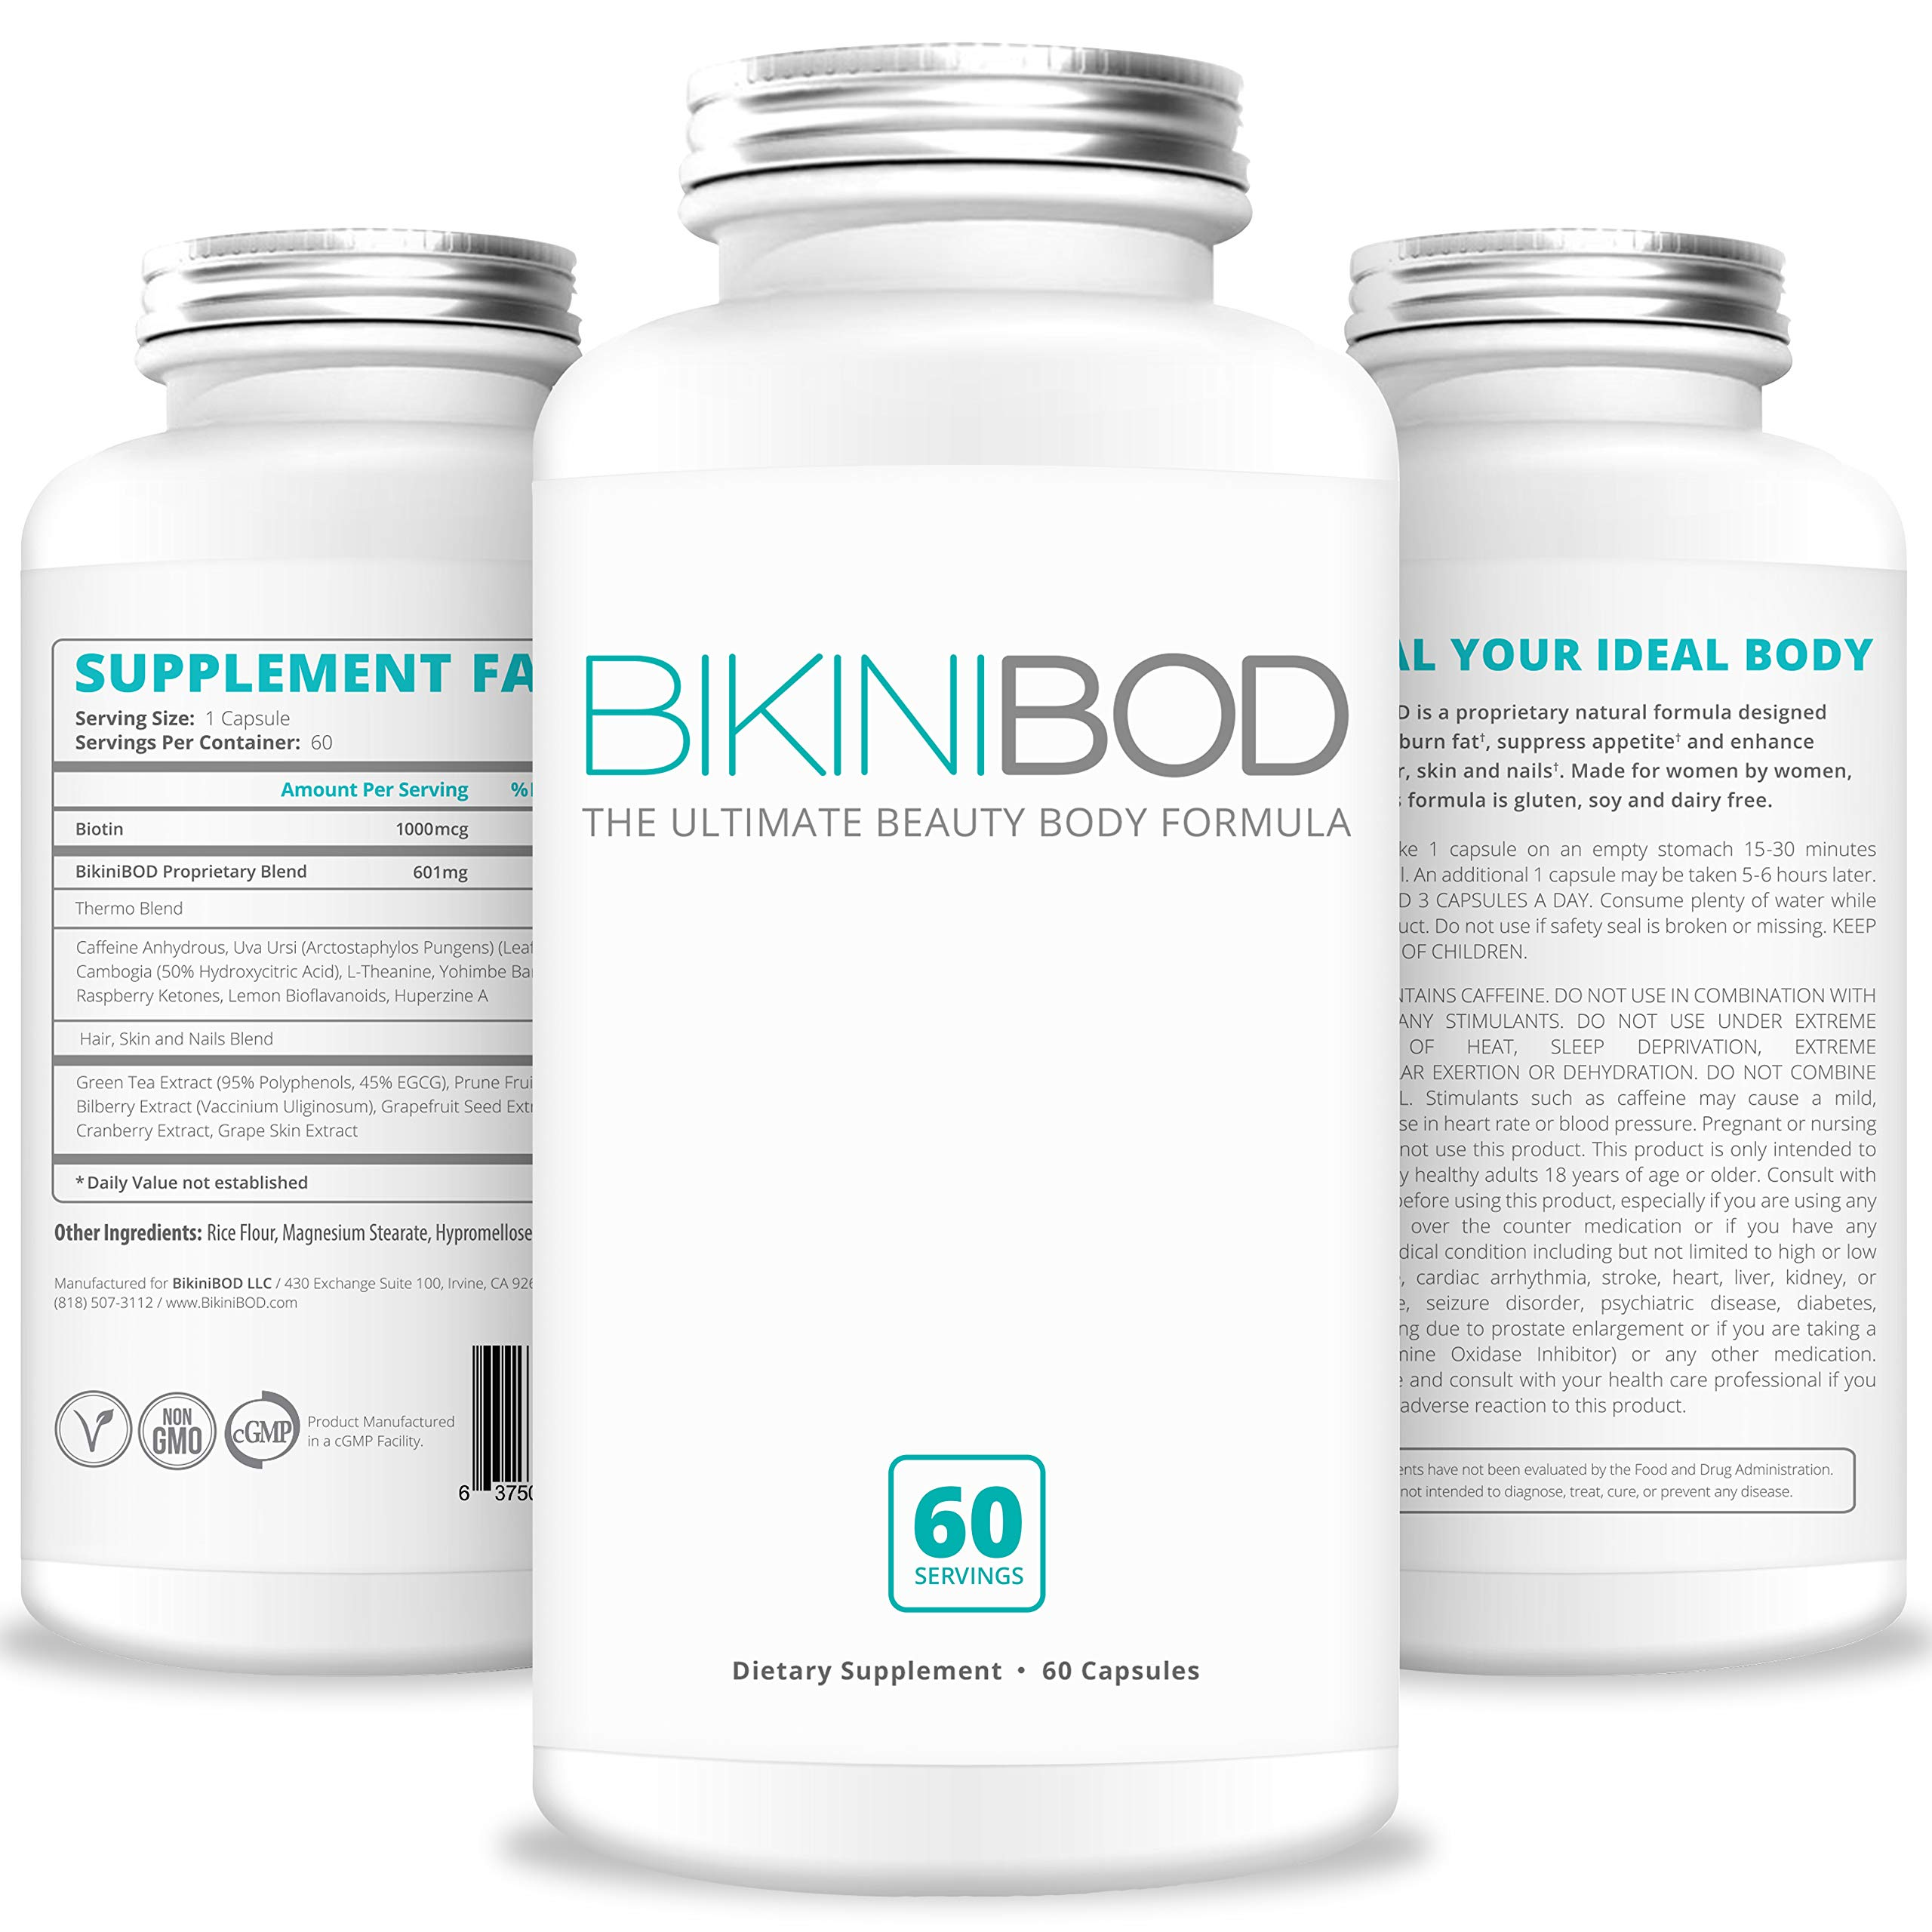 BIKINIBOD Weight Loss Pills for Women - Premium Vegan Weight Management & Beauty Supplement for Women | Garcinia Cambogia, Caffeine, Superfruit Extract, Yohimbe, Raspberry Ketones, Biotin| Fat Burners by BikiniBod